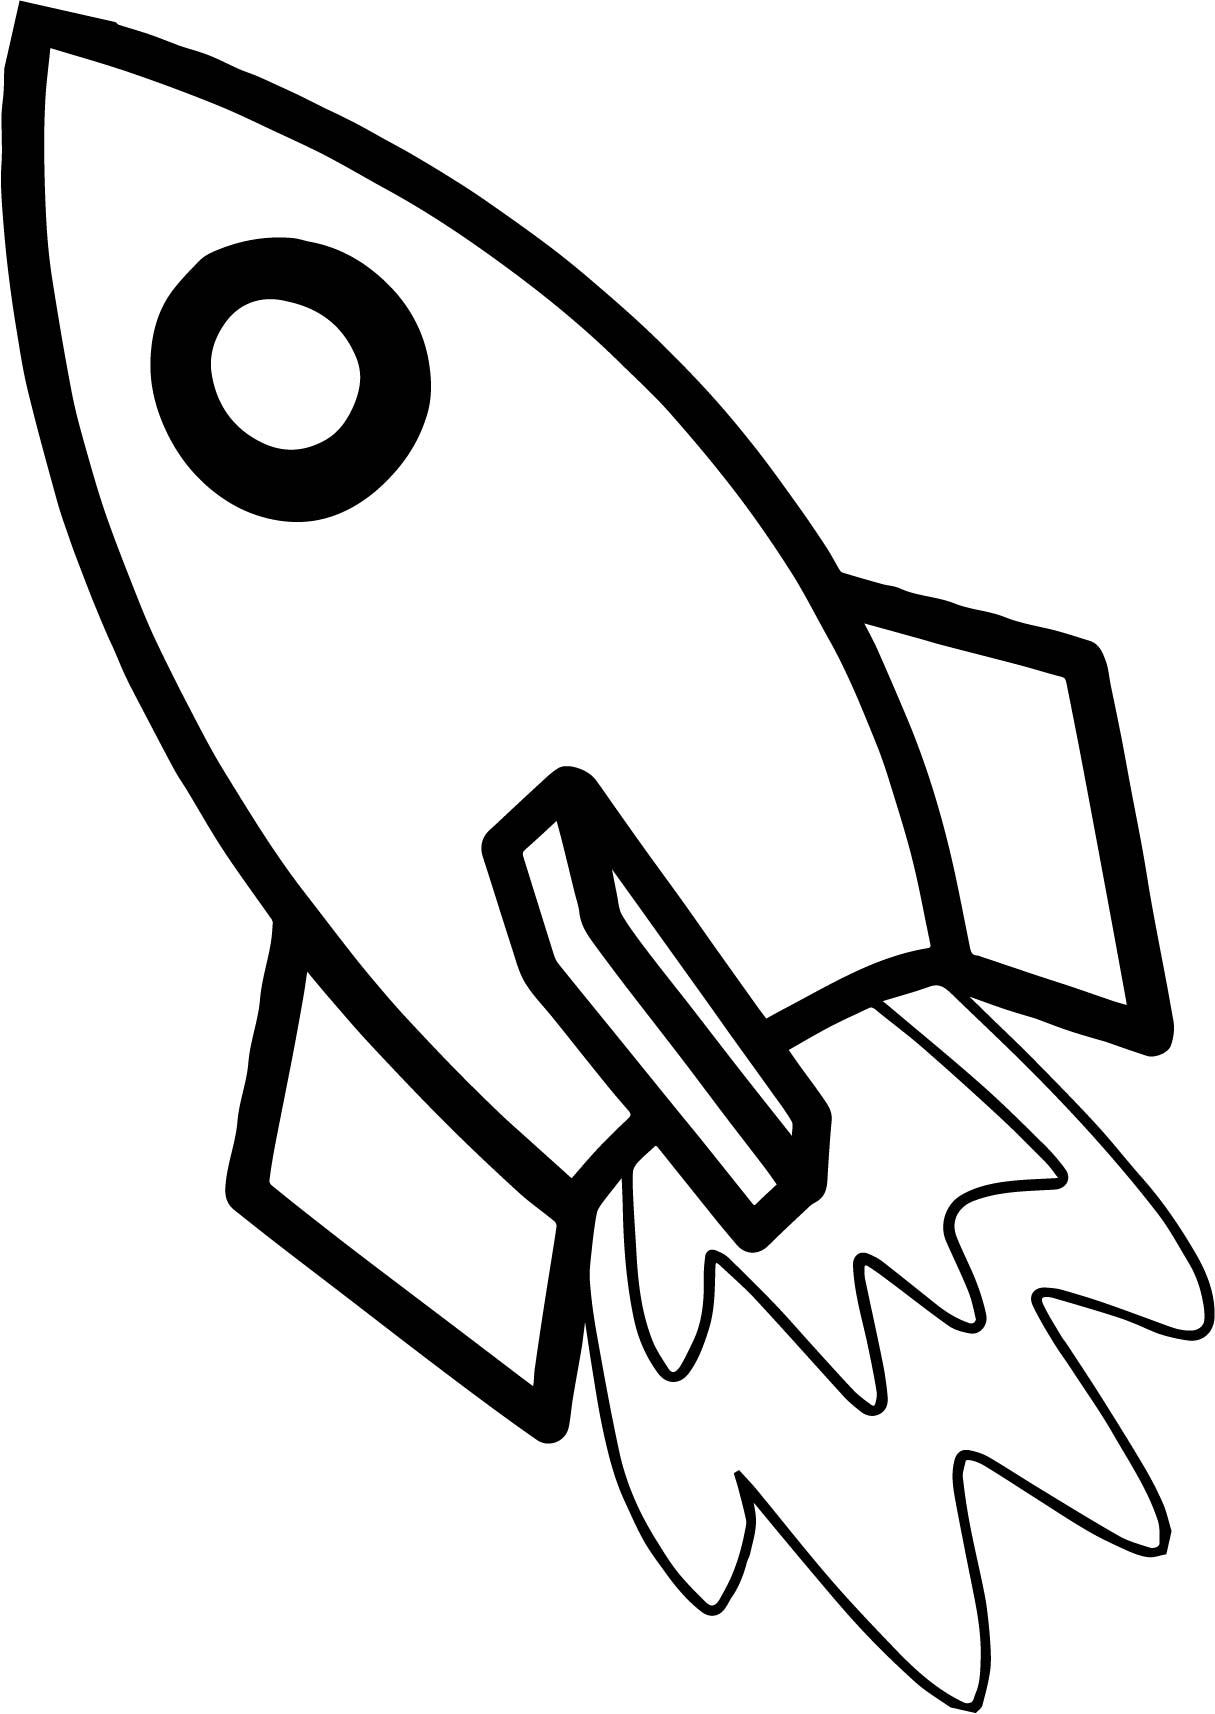 Astronaut Rocket Coloring Page